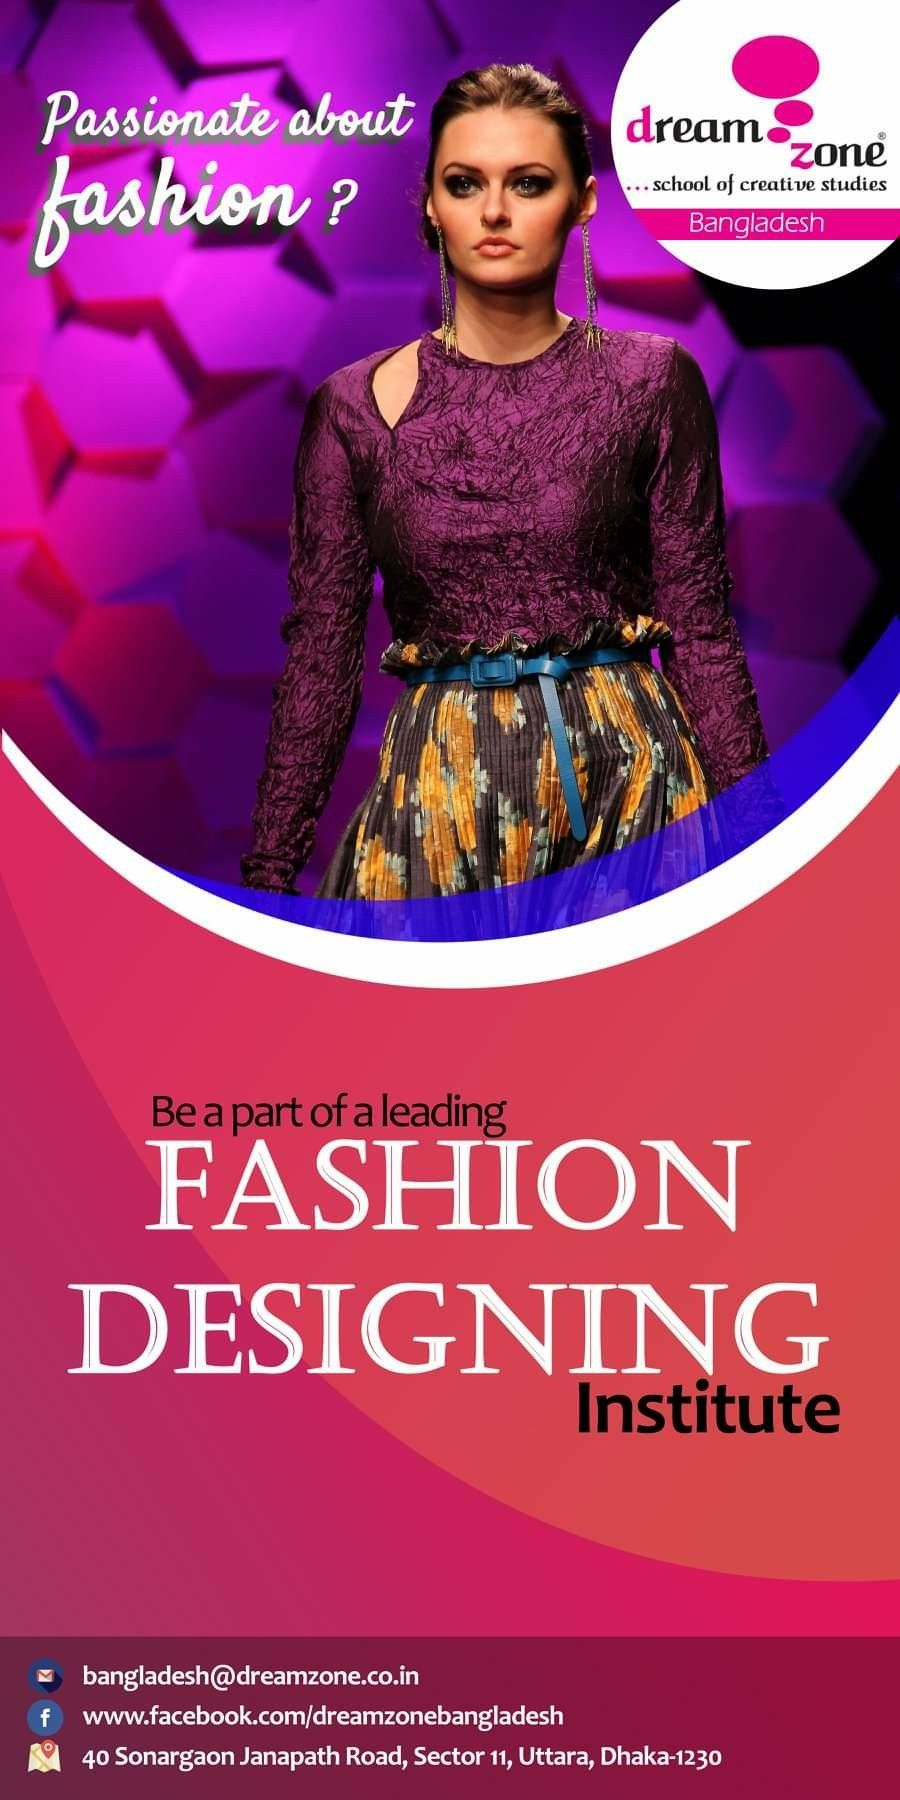 Guinness World Record Holder And India S No 1 Fashion And Design Institute Dreamzone Now In B Fashion Designing Institute Web Development Course Fashion Design